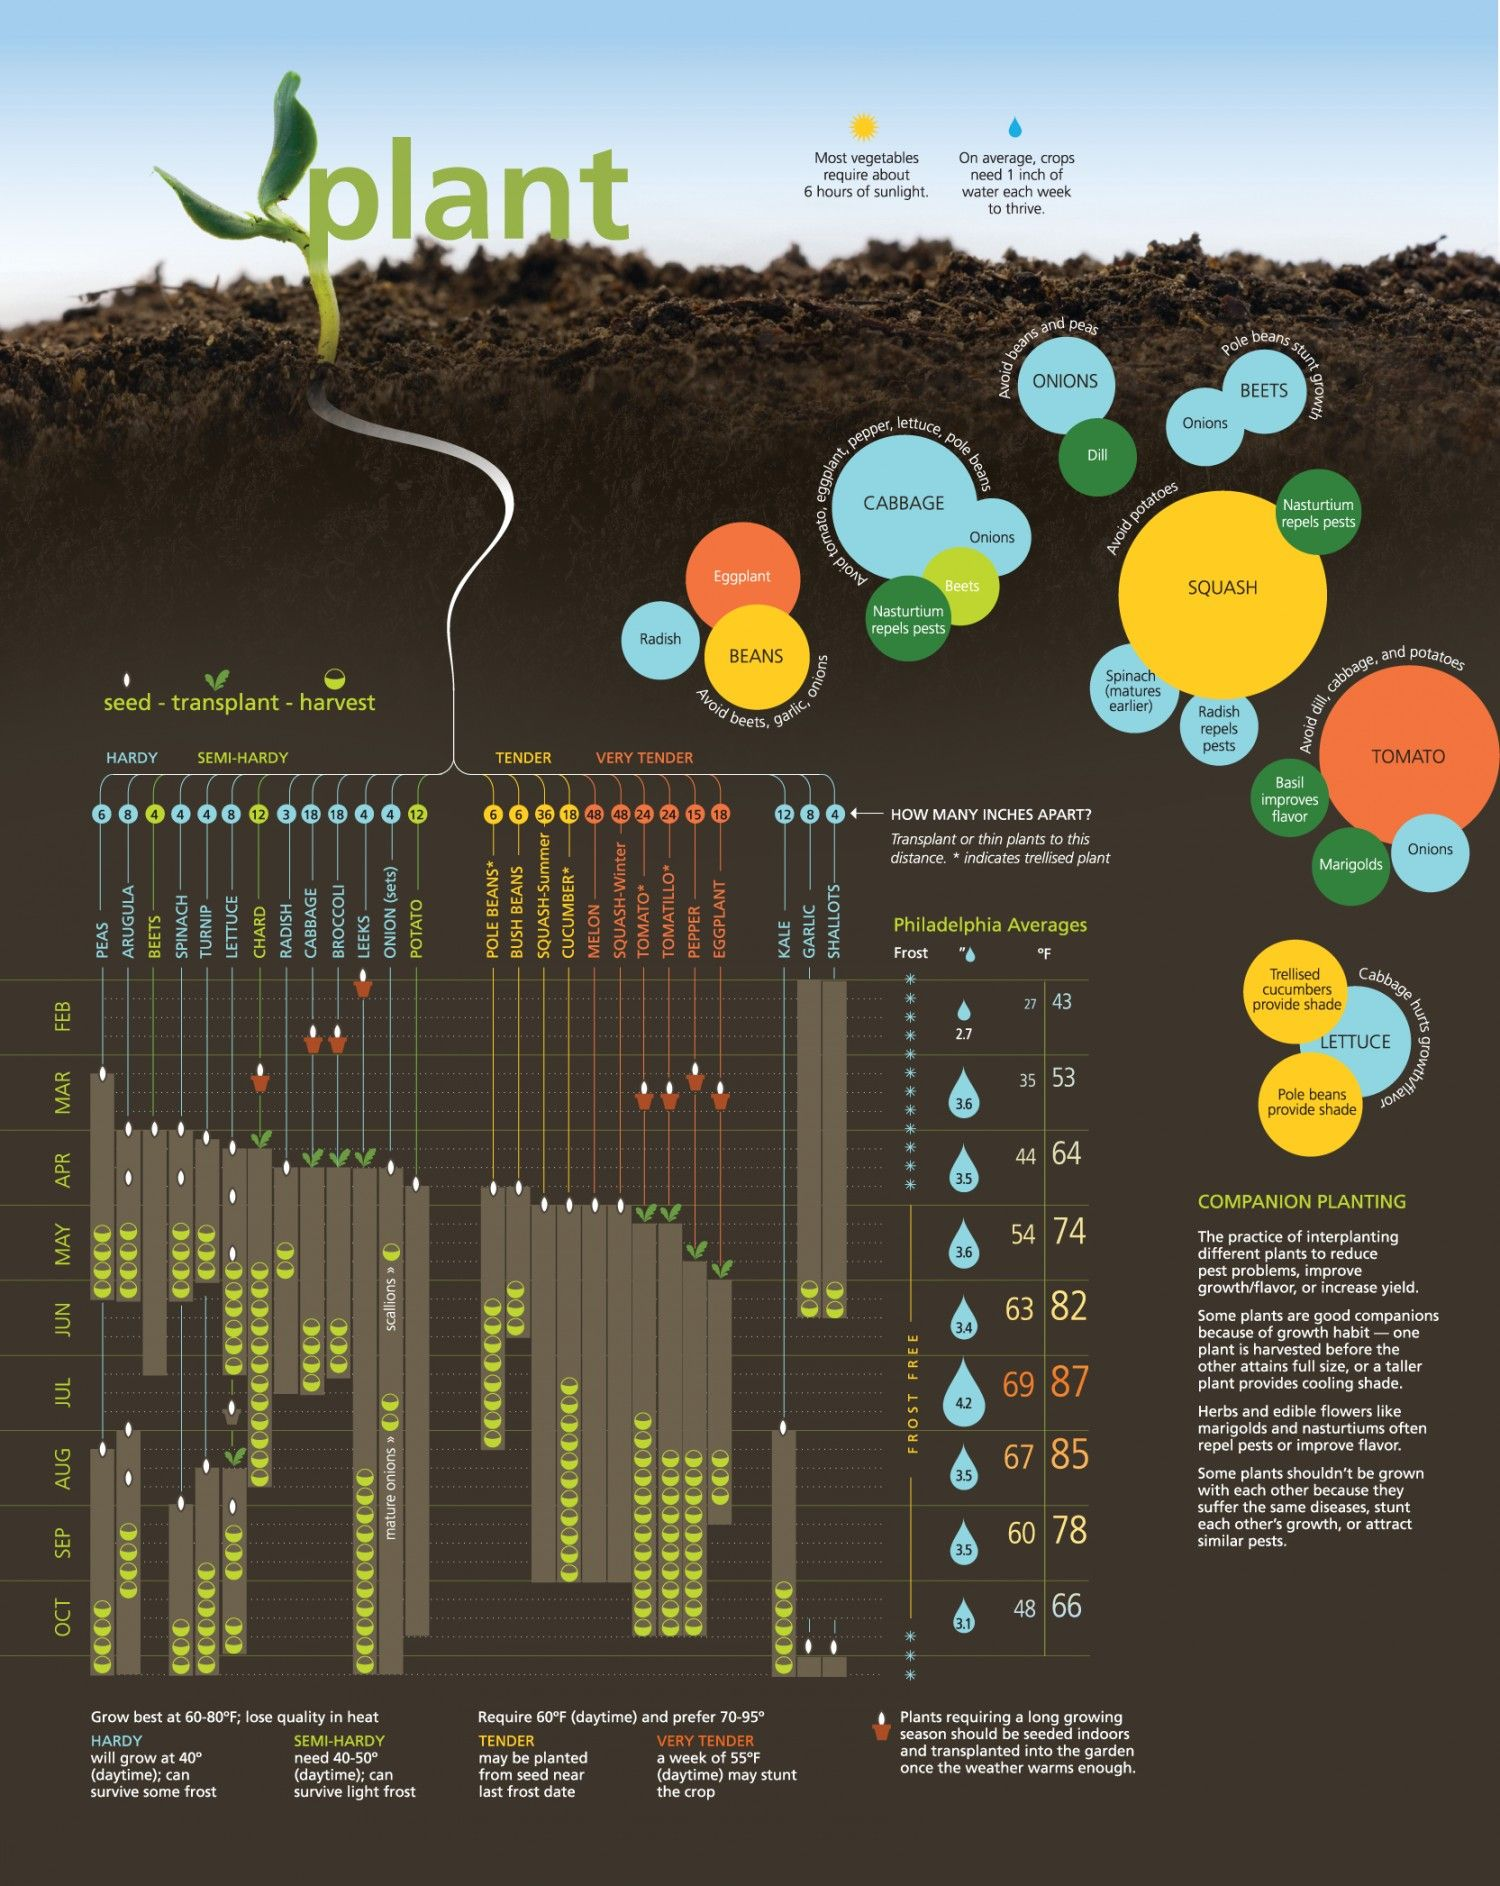 Vegetable garden graphic - Planting Schedule For A Philadelphia Area Vegetable Garden From The 2011 Maskar Design Infographic